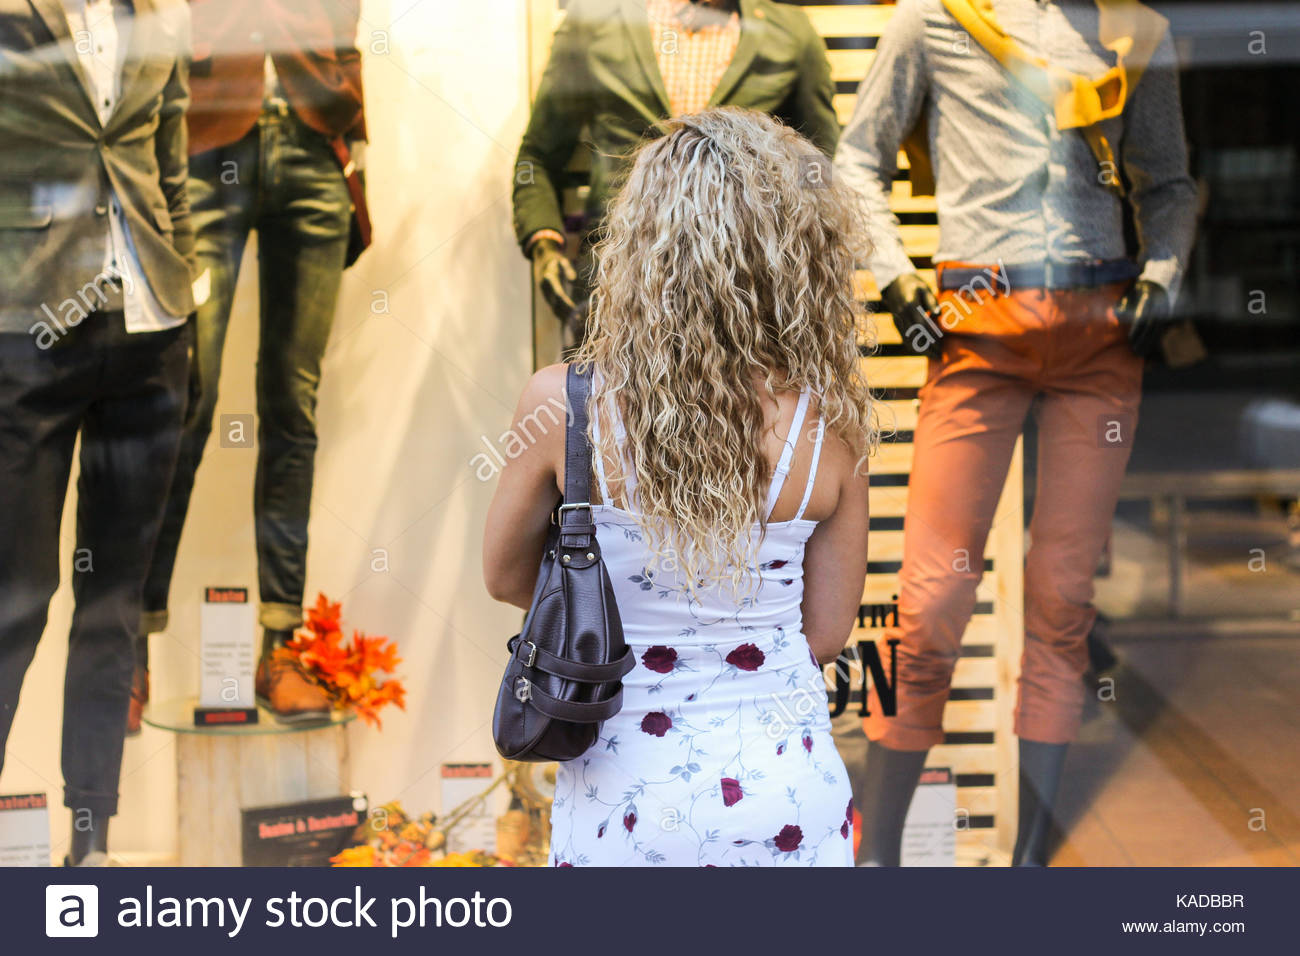 Window Shopping - Attractive Curly Blonde Girl Standing in Front of the Shop Window and Looking at Clothes. Consumerism - Stock Image